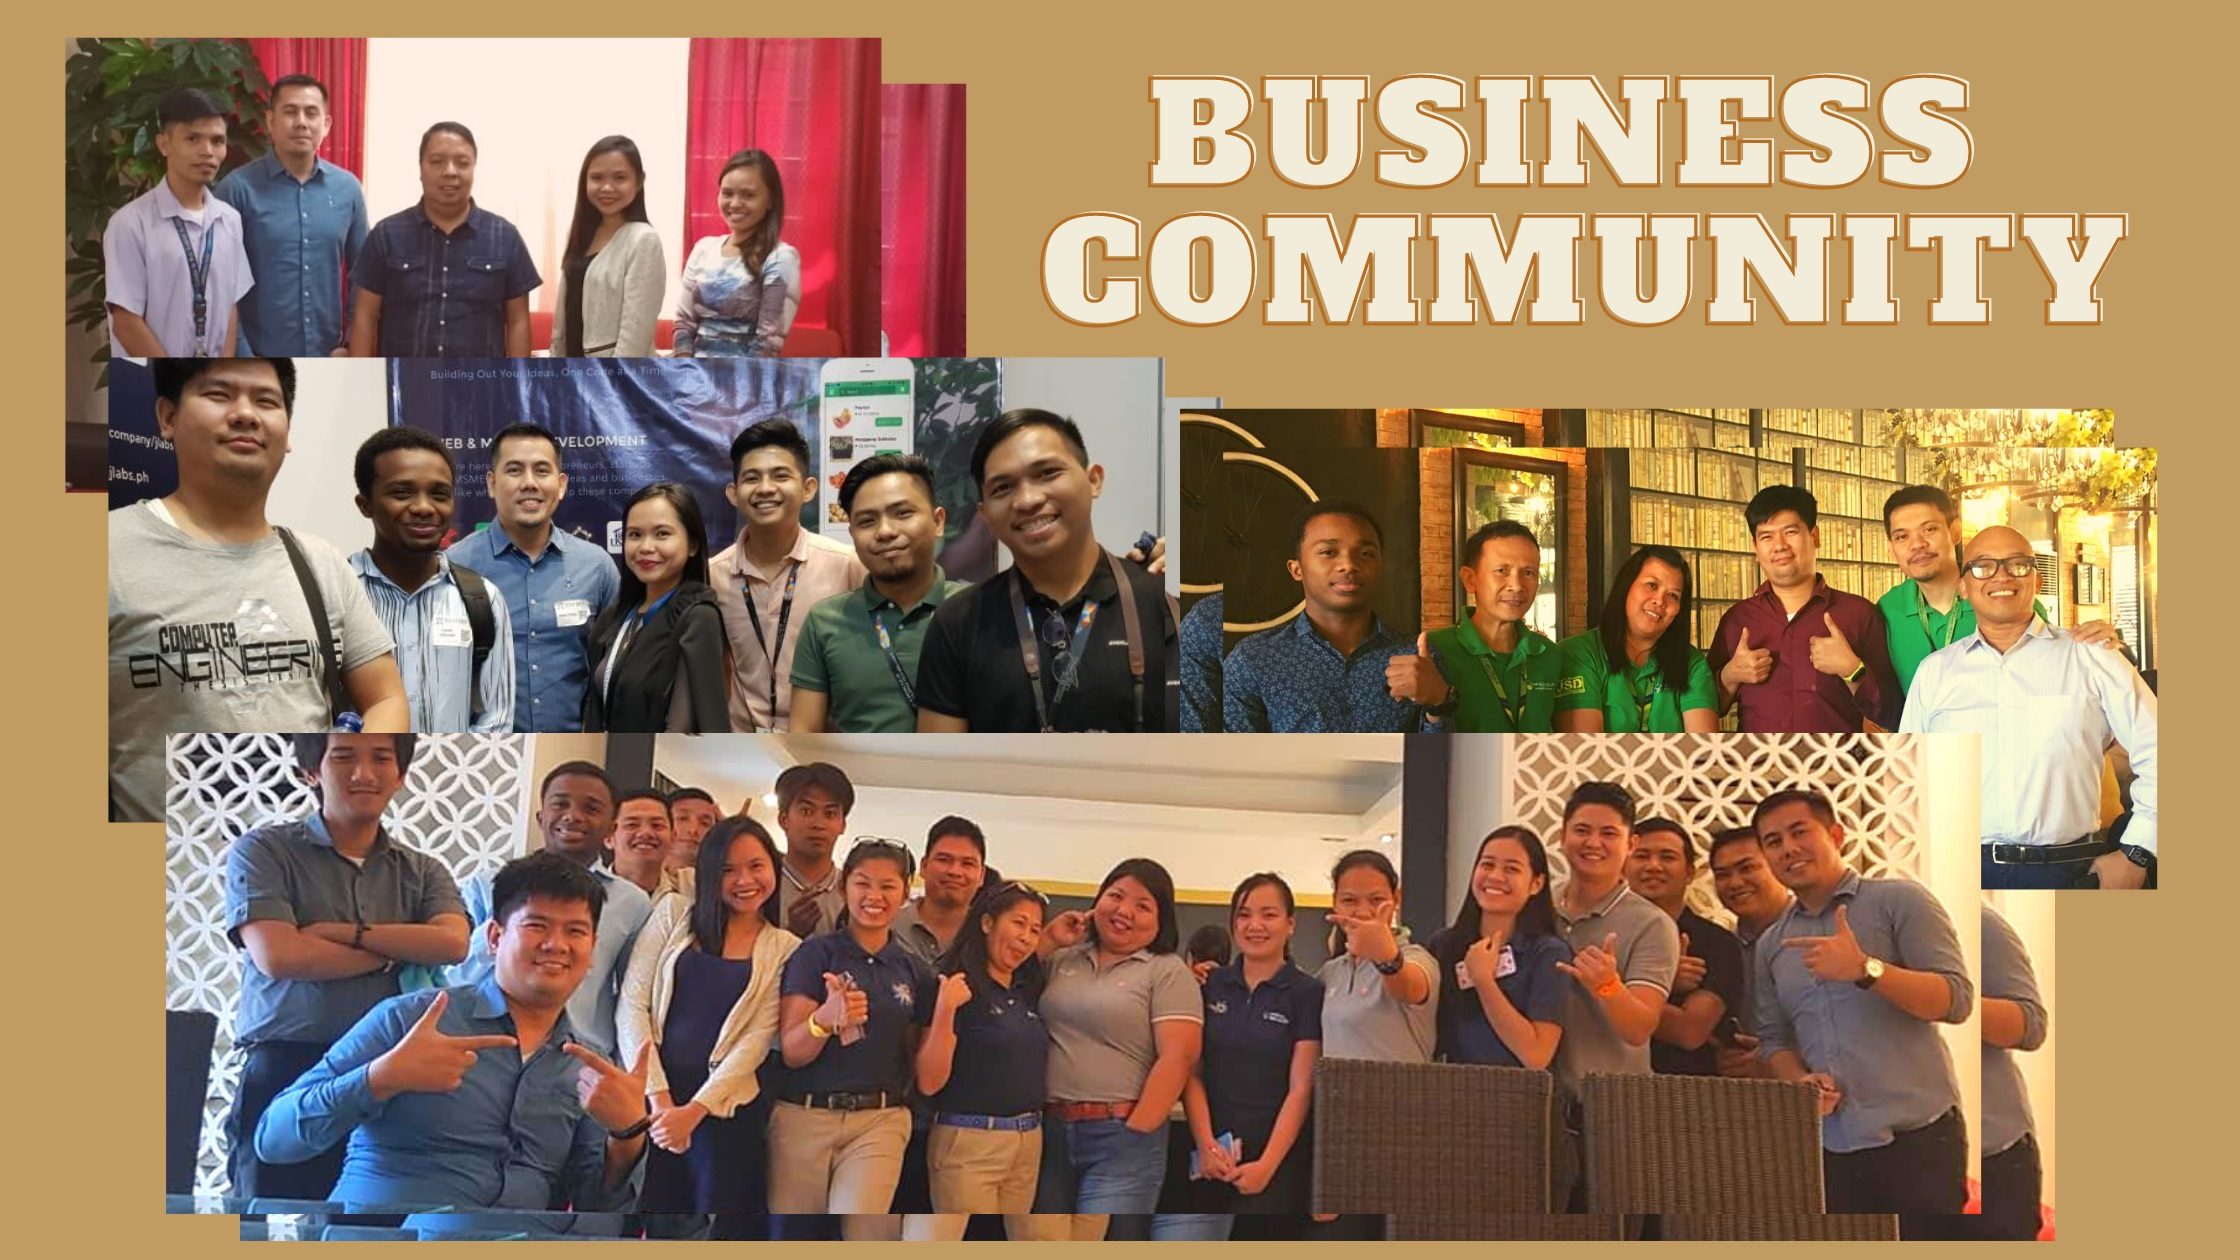 Our Business Community